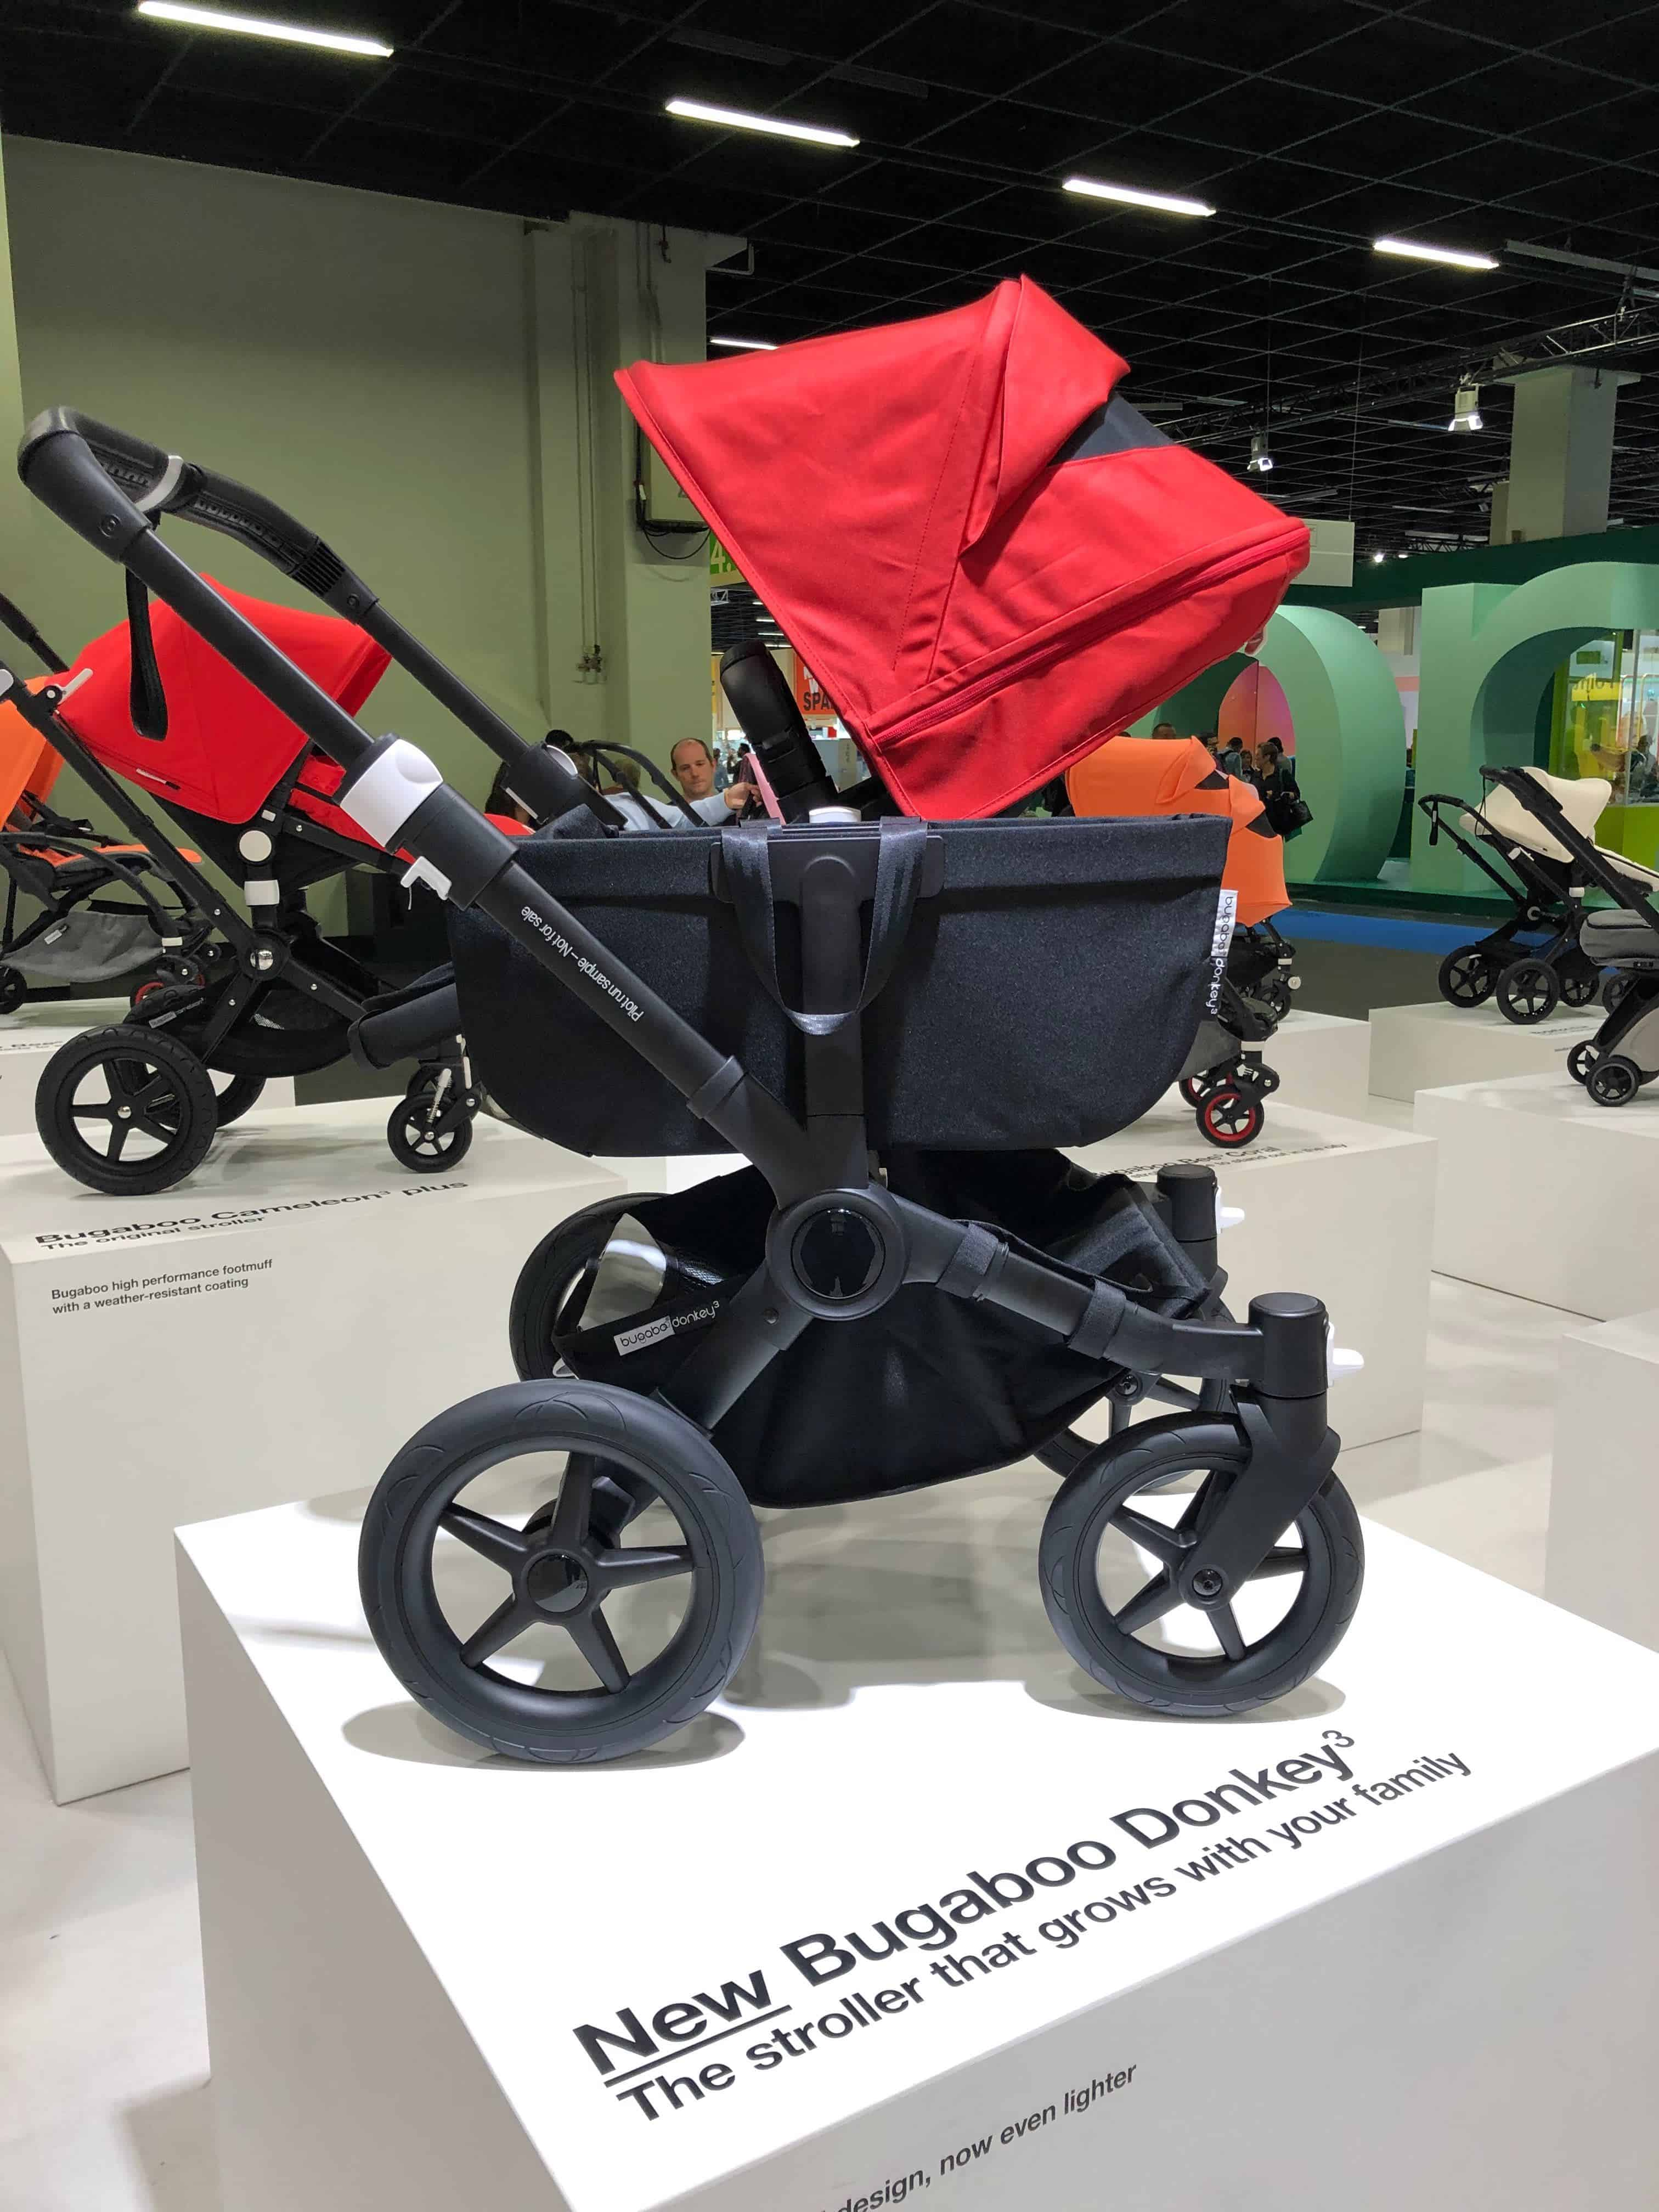 Red and black Bugaboo Donkey3 stroller against showroom background